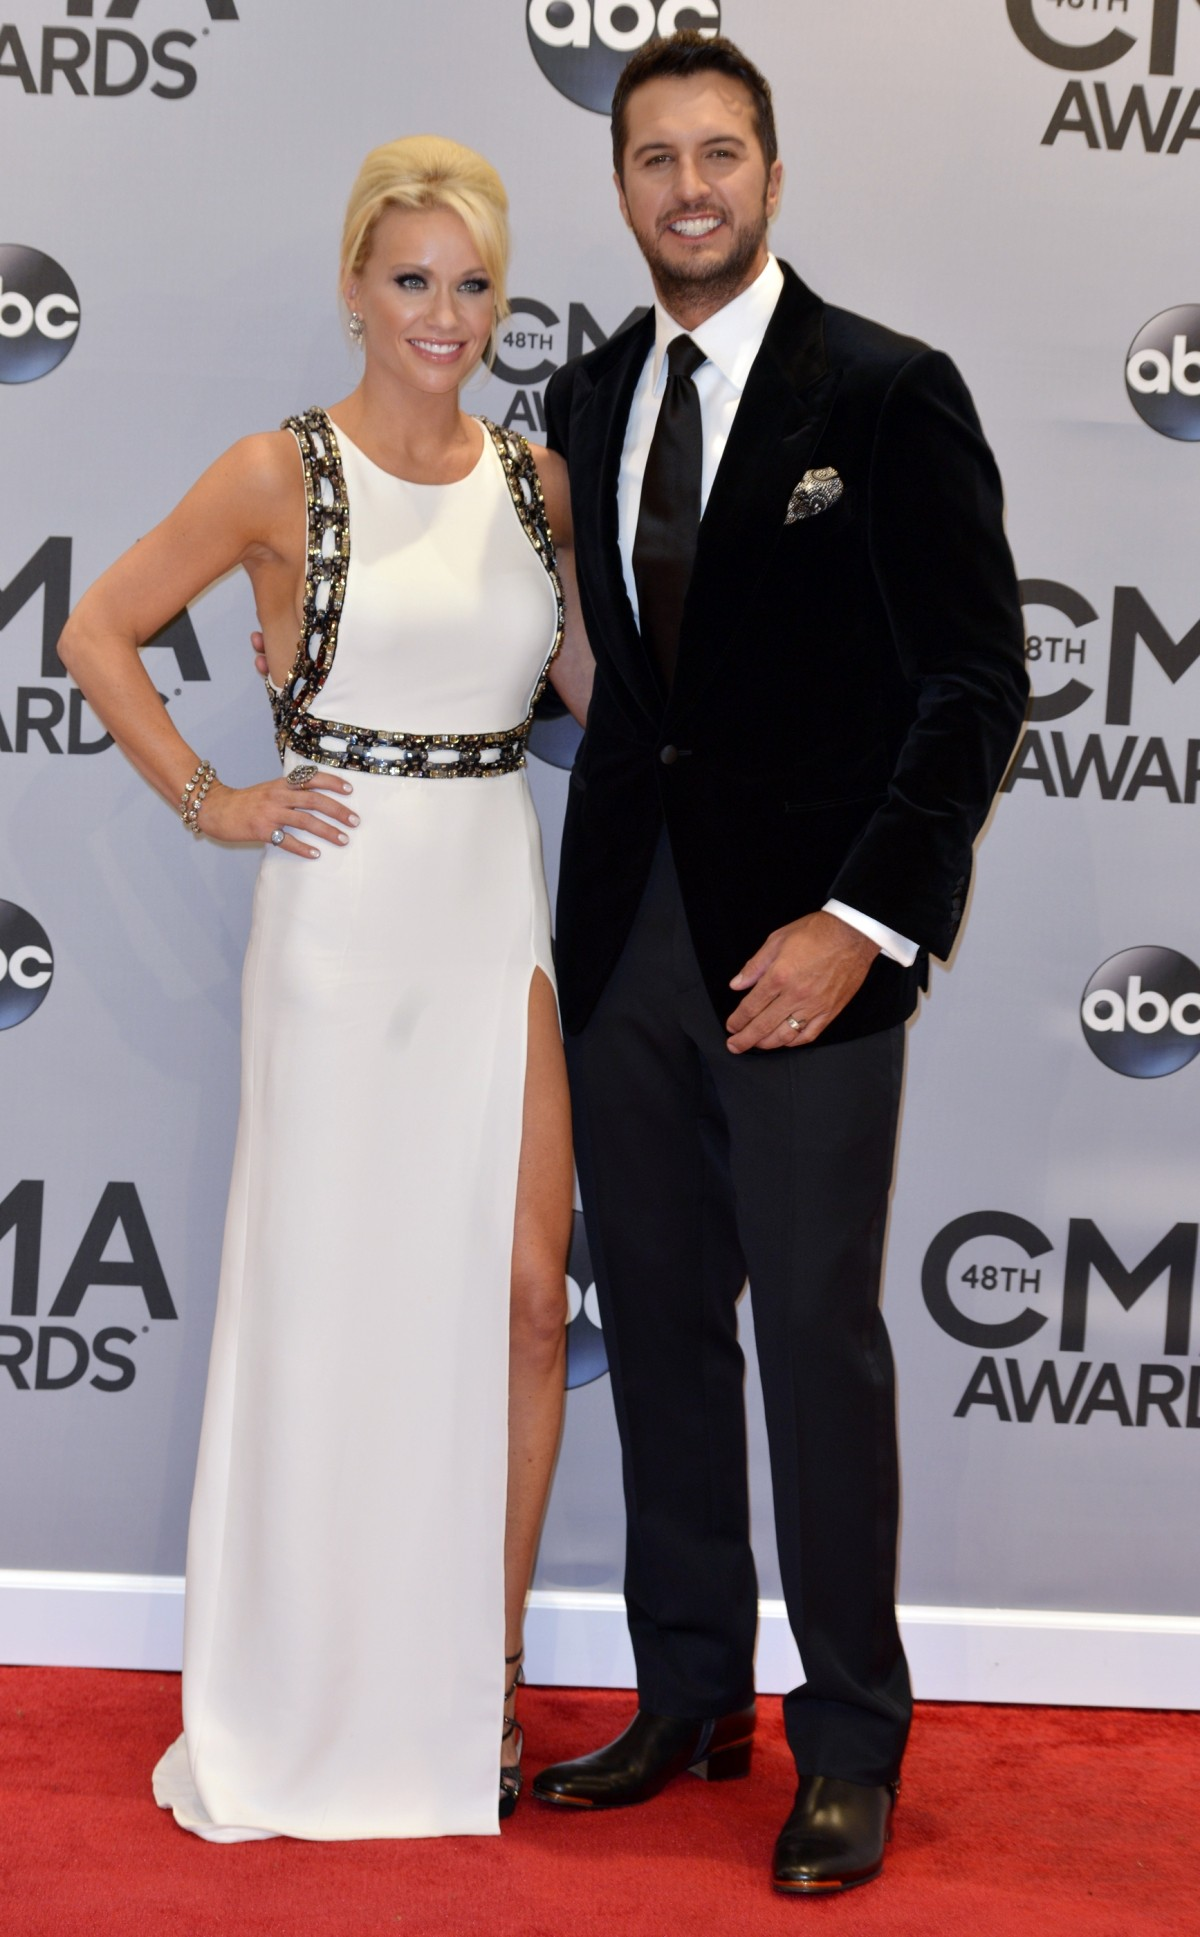 Luke Bryan and wife at the CMAs